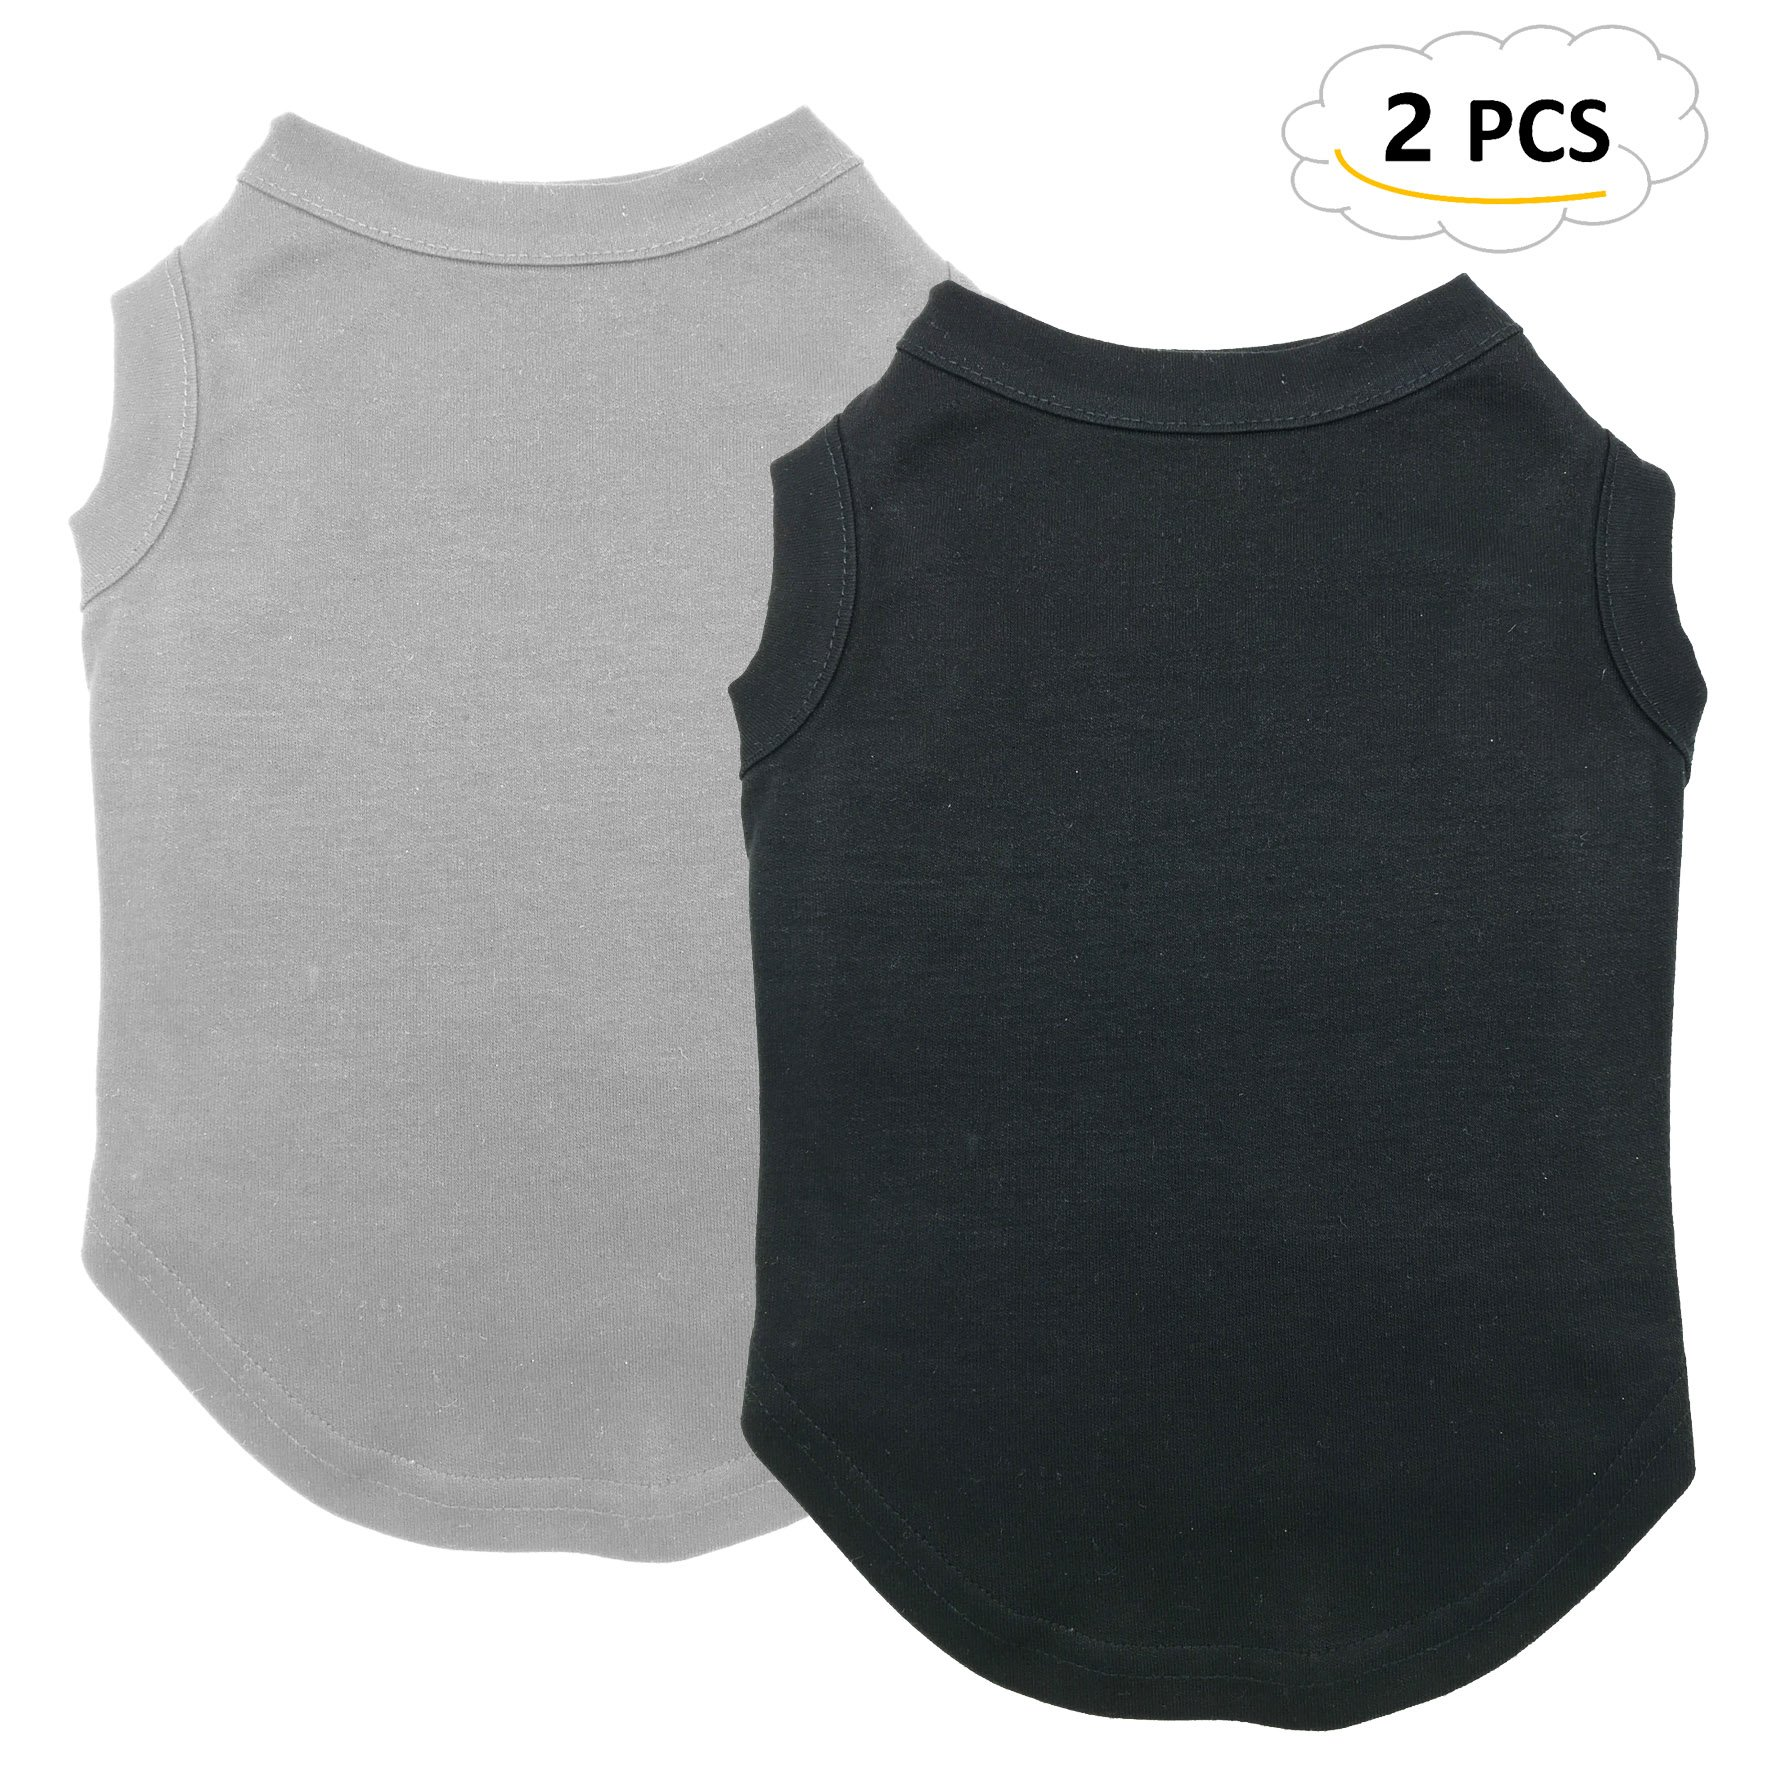 Chol & Vivi Dog Shirts Clothes, Dog Clothes T Shirt Vest Soft And Thin, 2pcs Blank Shirts Clothes Fit For Extra Small Medium Large Extra Large Size Dog Puppy, Large Size, Black And Grey